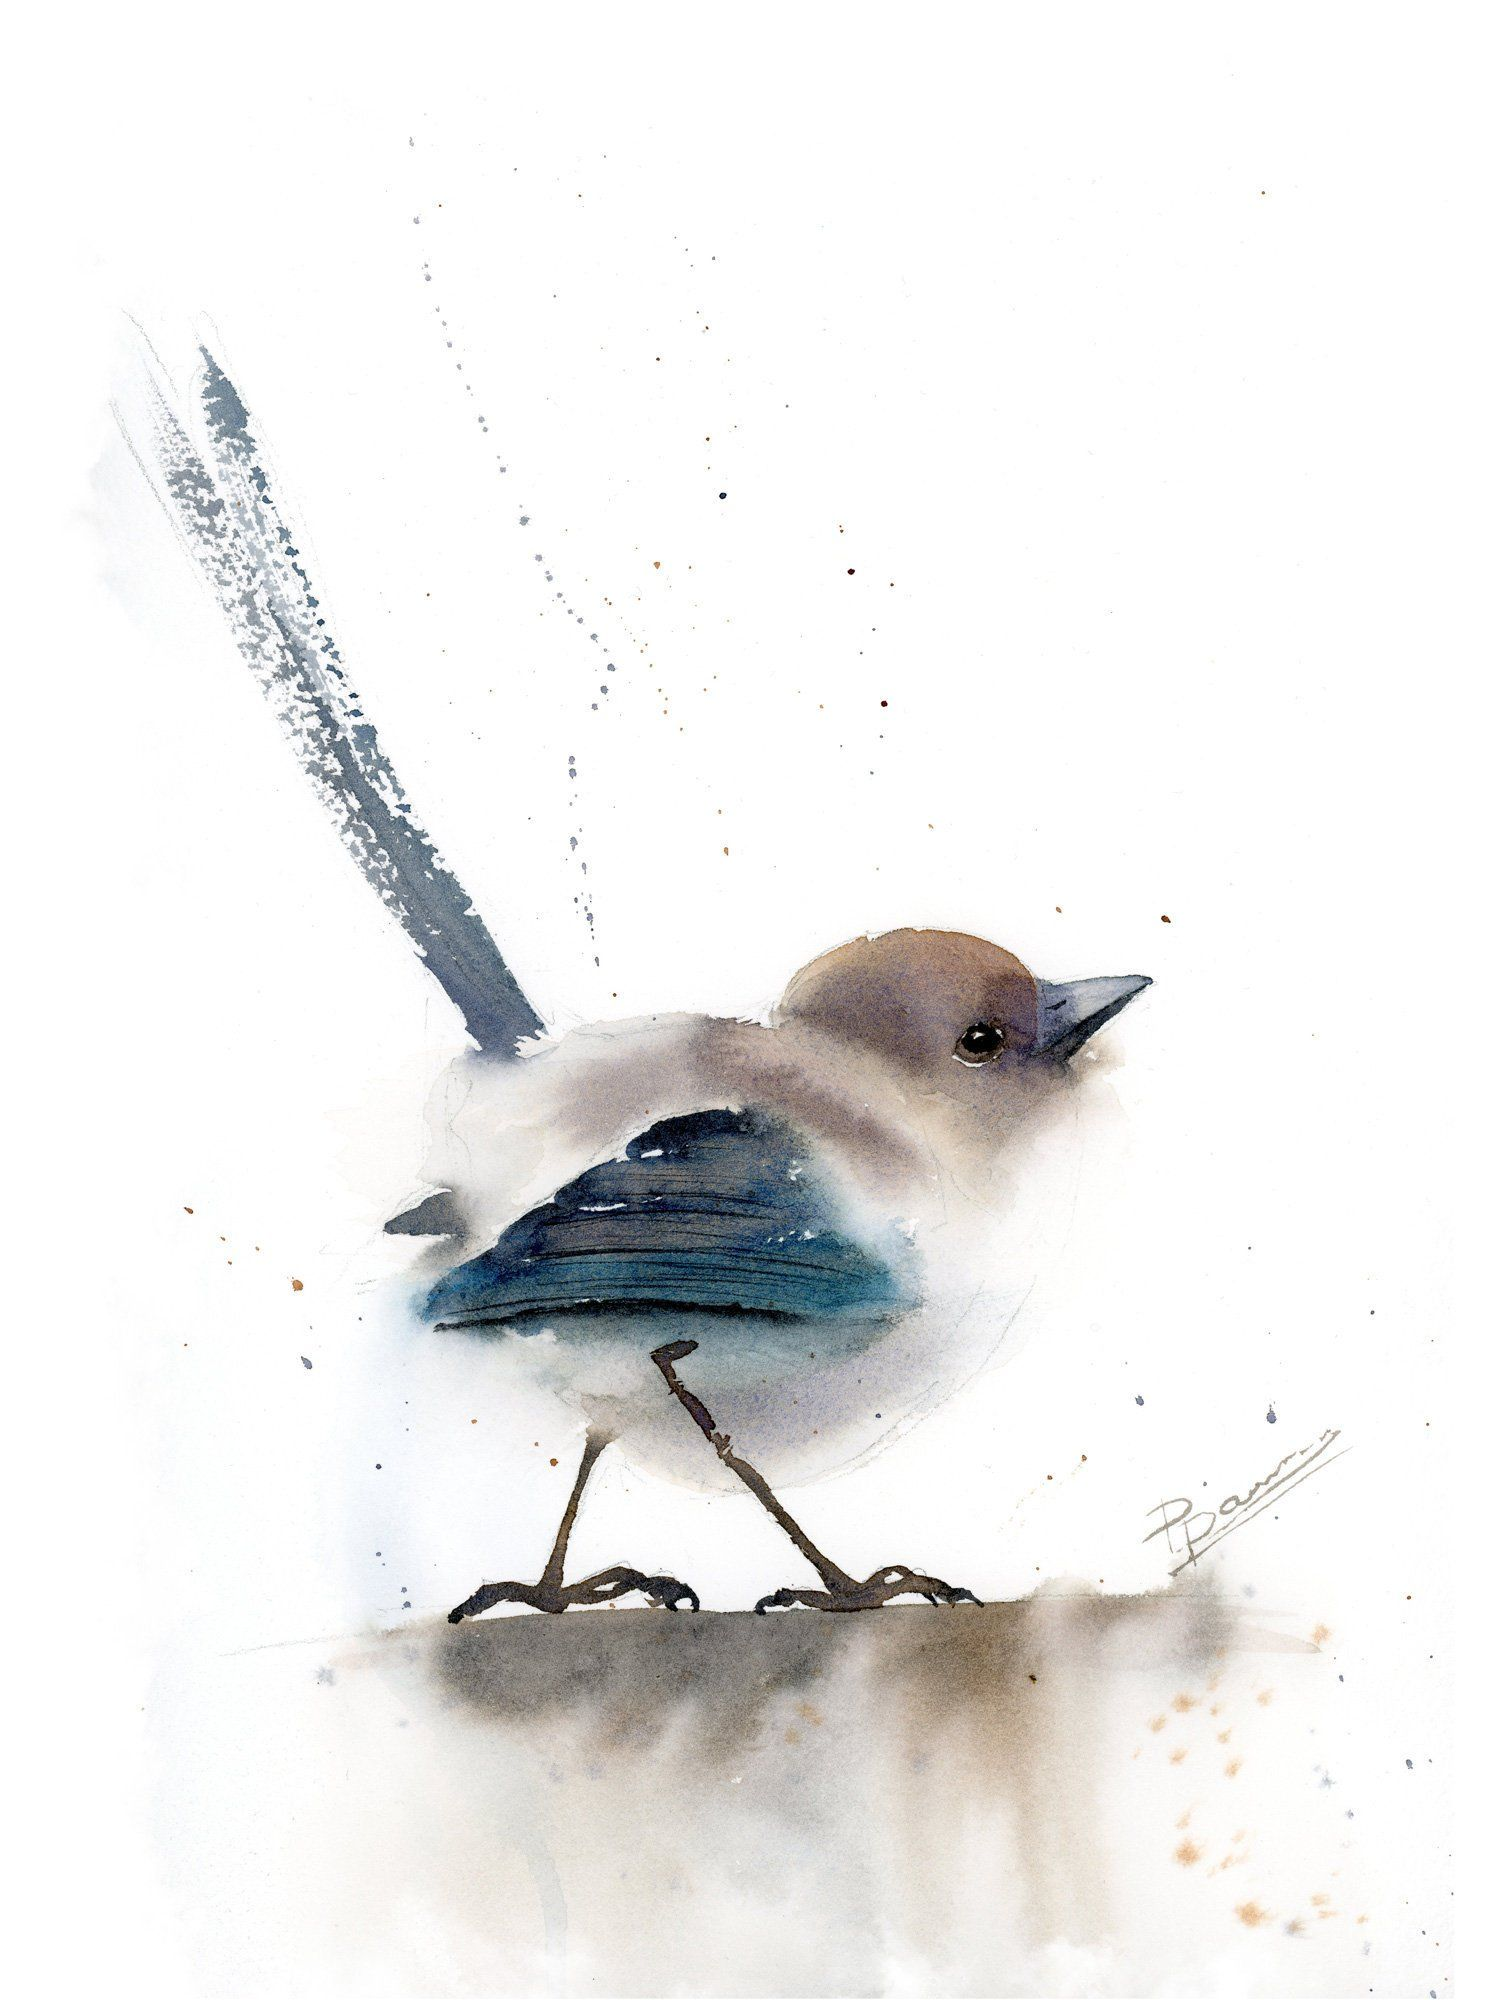 Wren Art Minimalist Original Watercolor Painting Abstract Bird